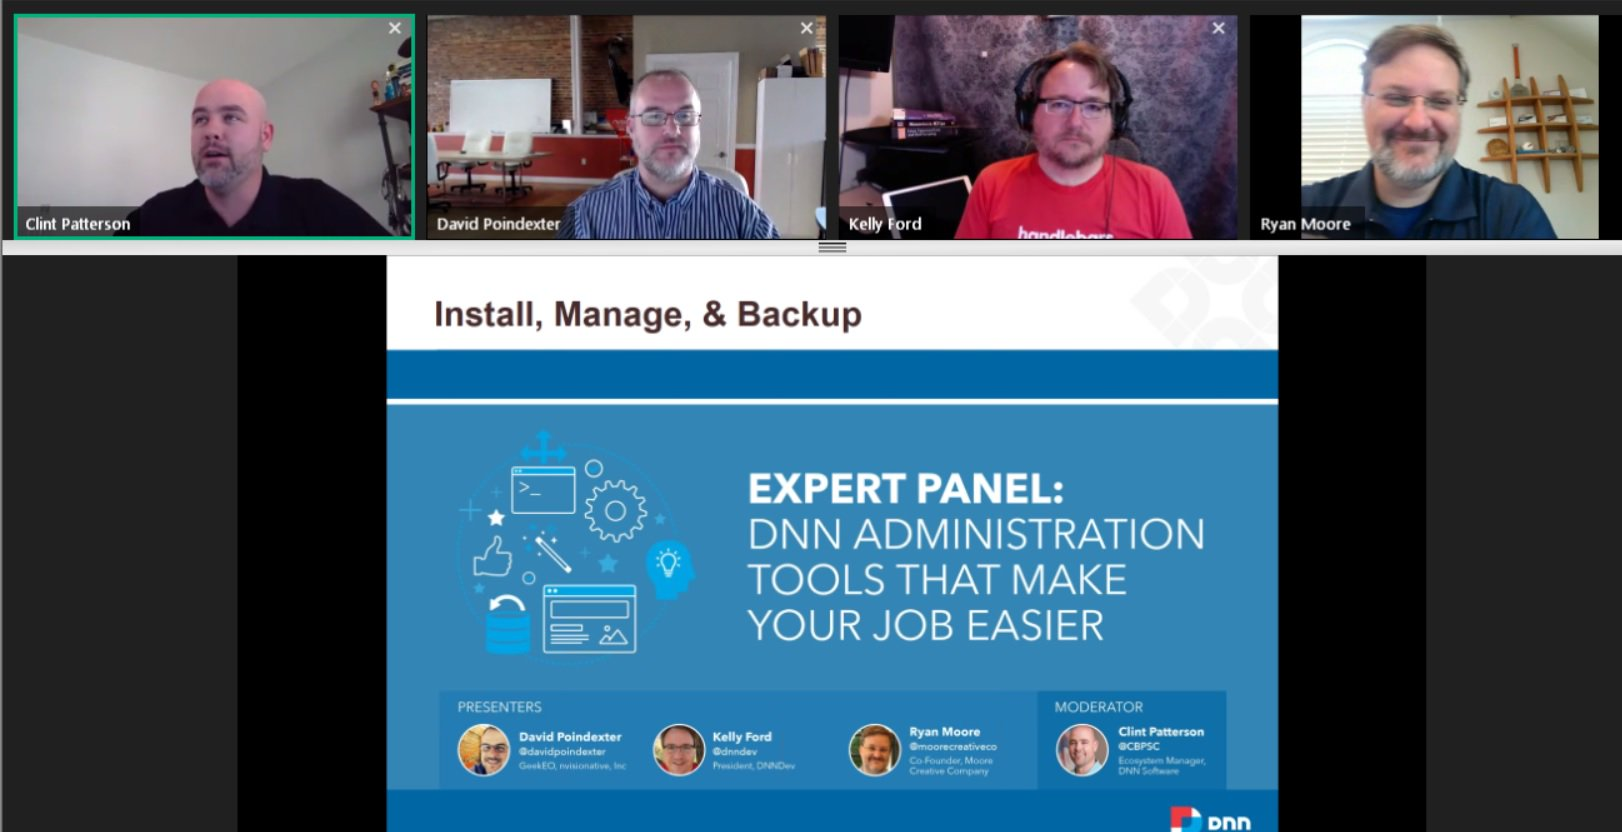 DNN Administration Tools Webinar Screen Capture